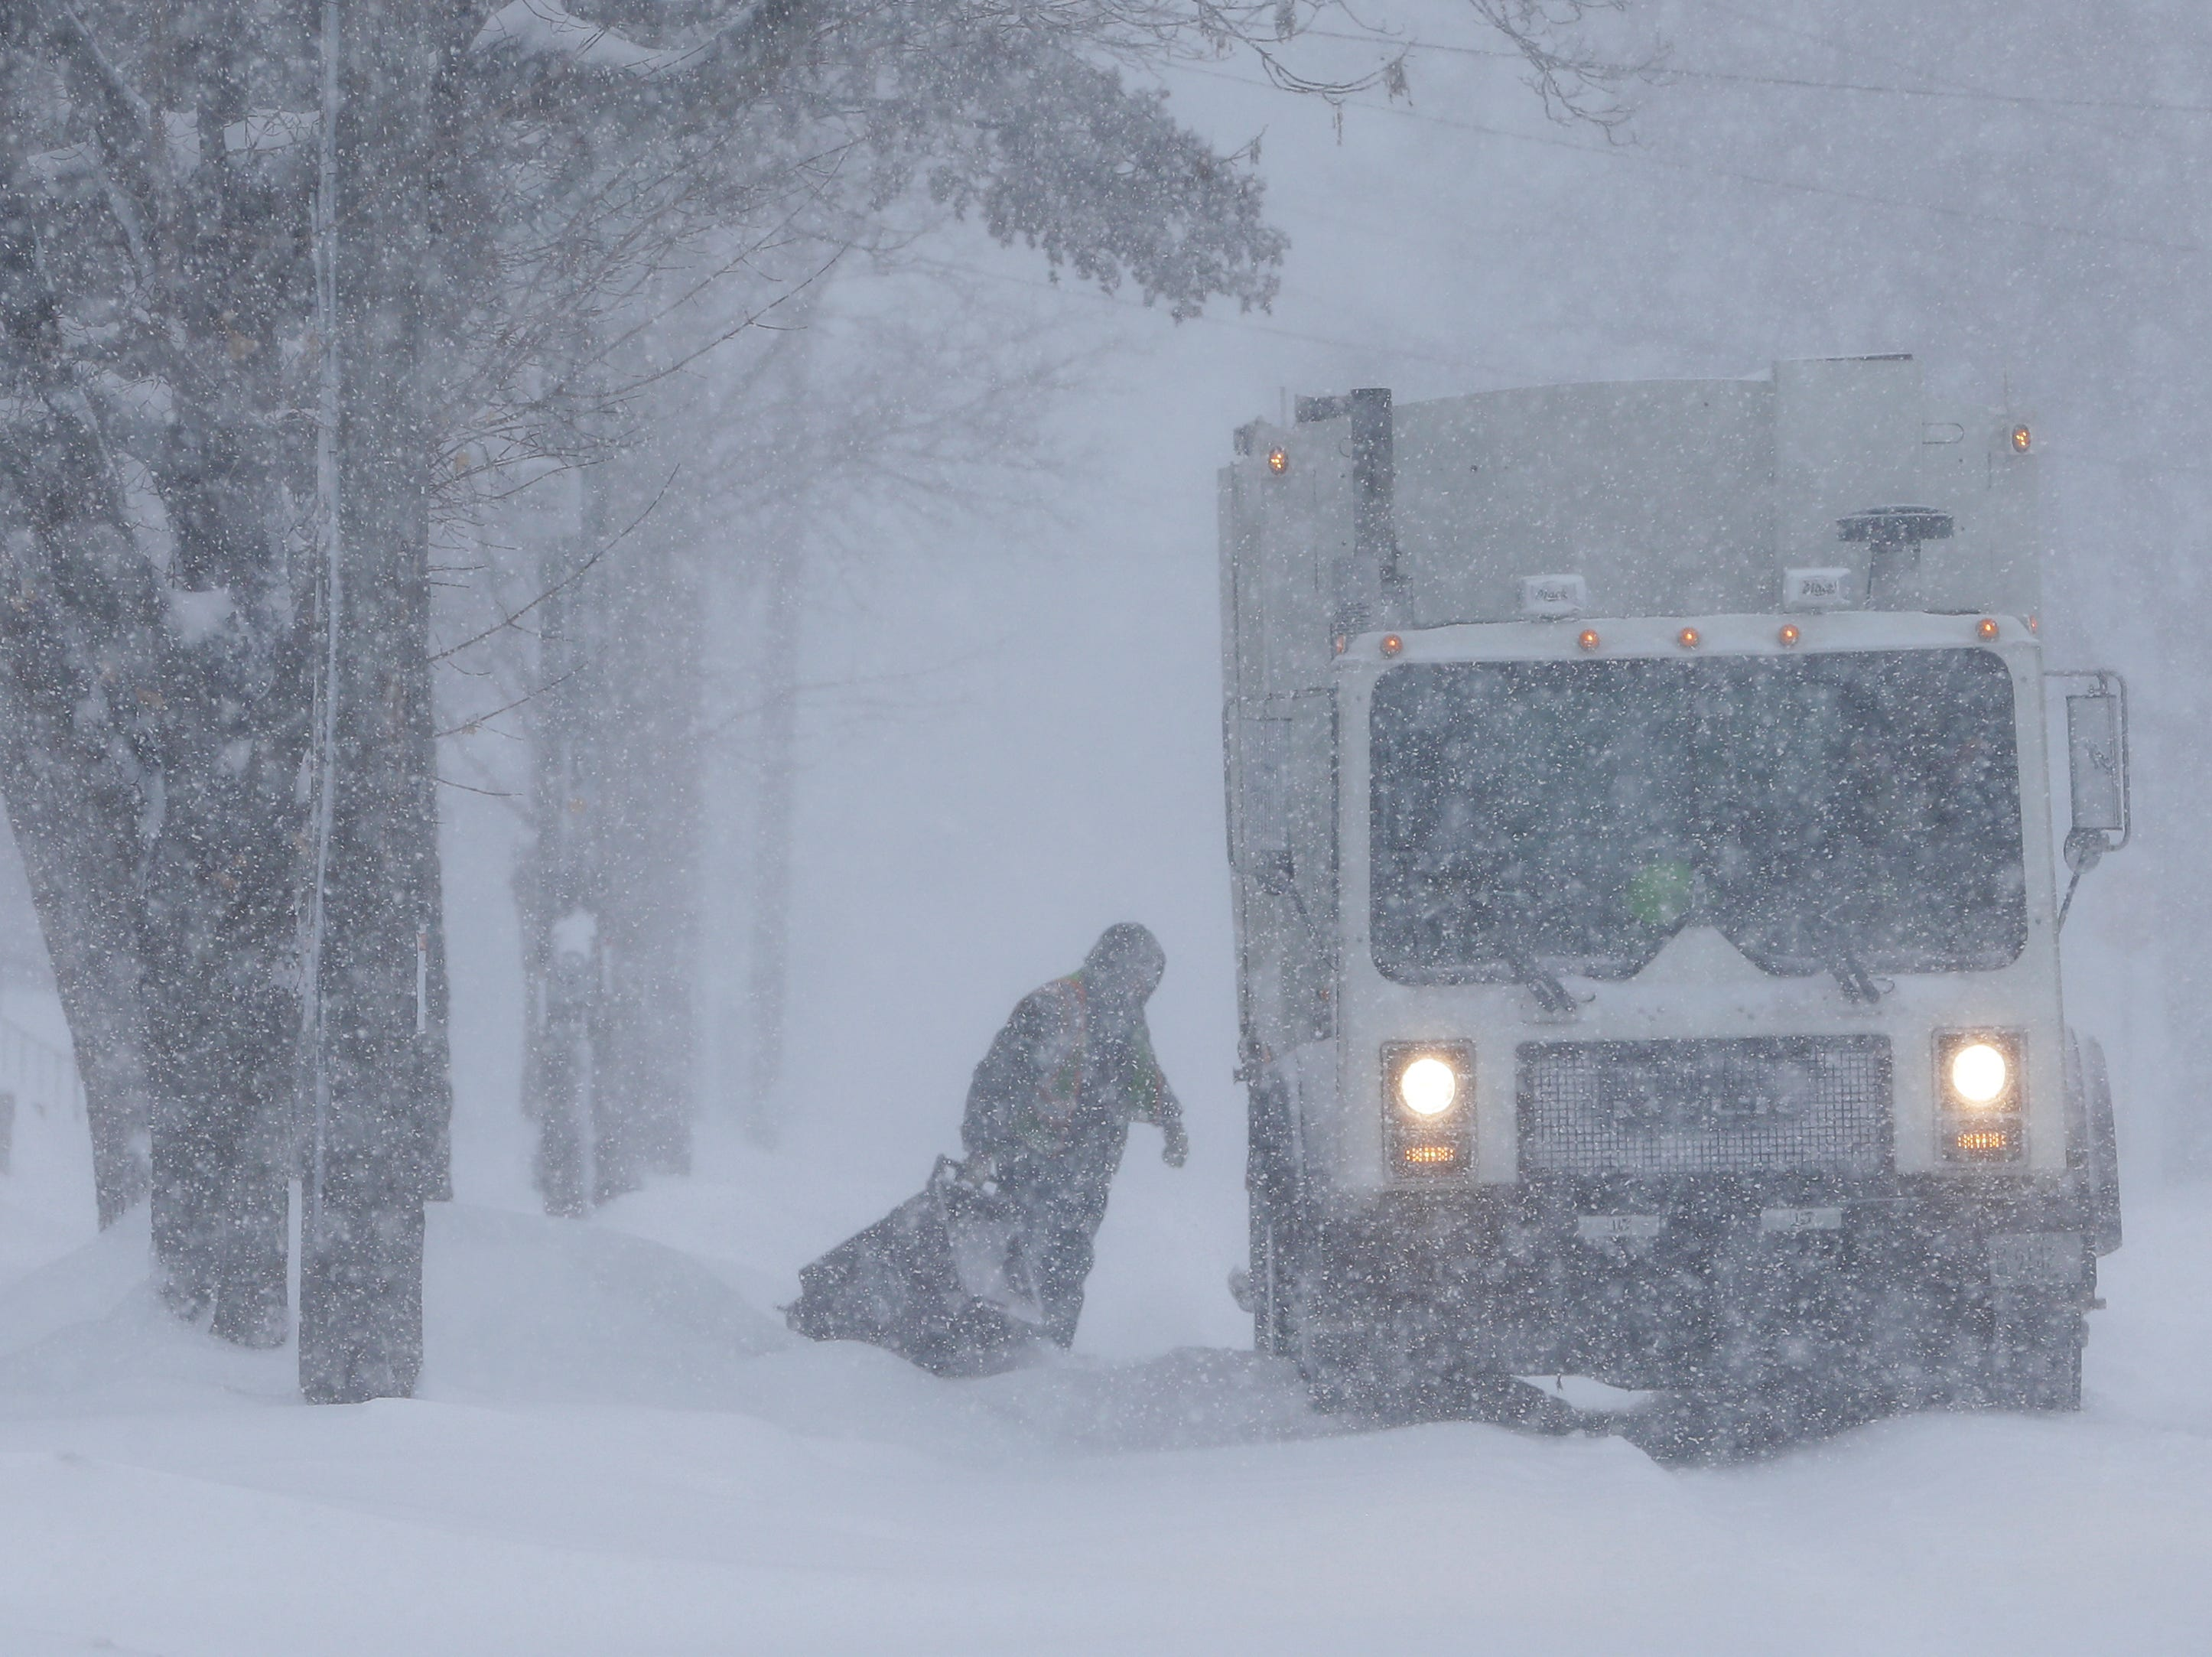 An employee of Pozorski Hauling & Recycling collects trash during a snowstorm on the 1100 block of 13th Street on Monday, Jan. 28, 2019, in Manitowoc, Wis.